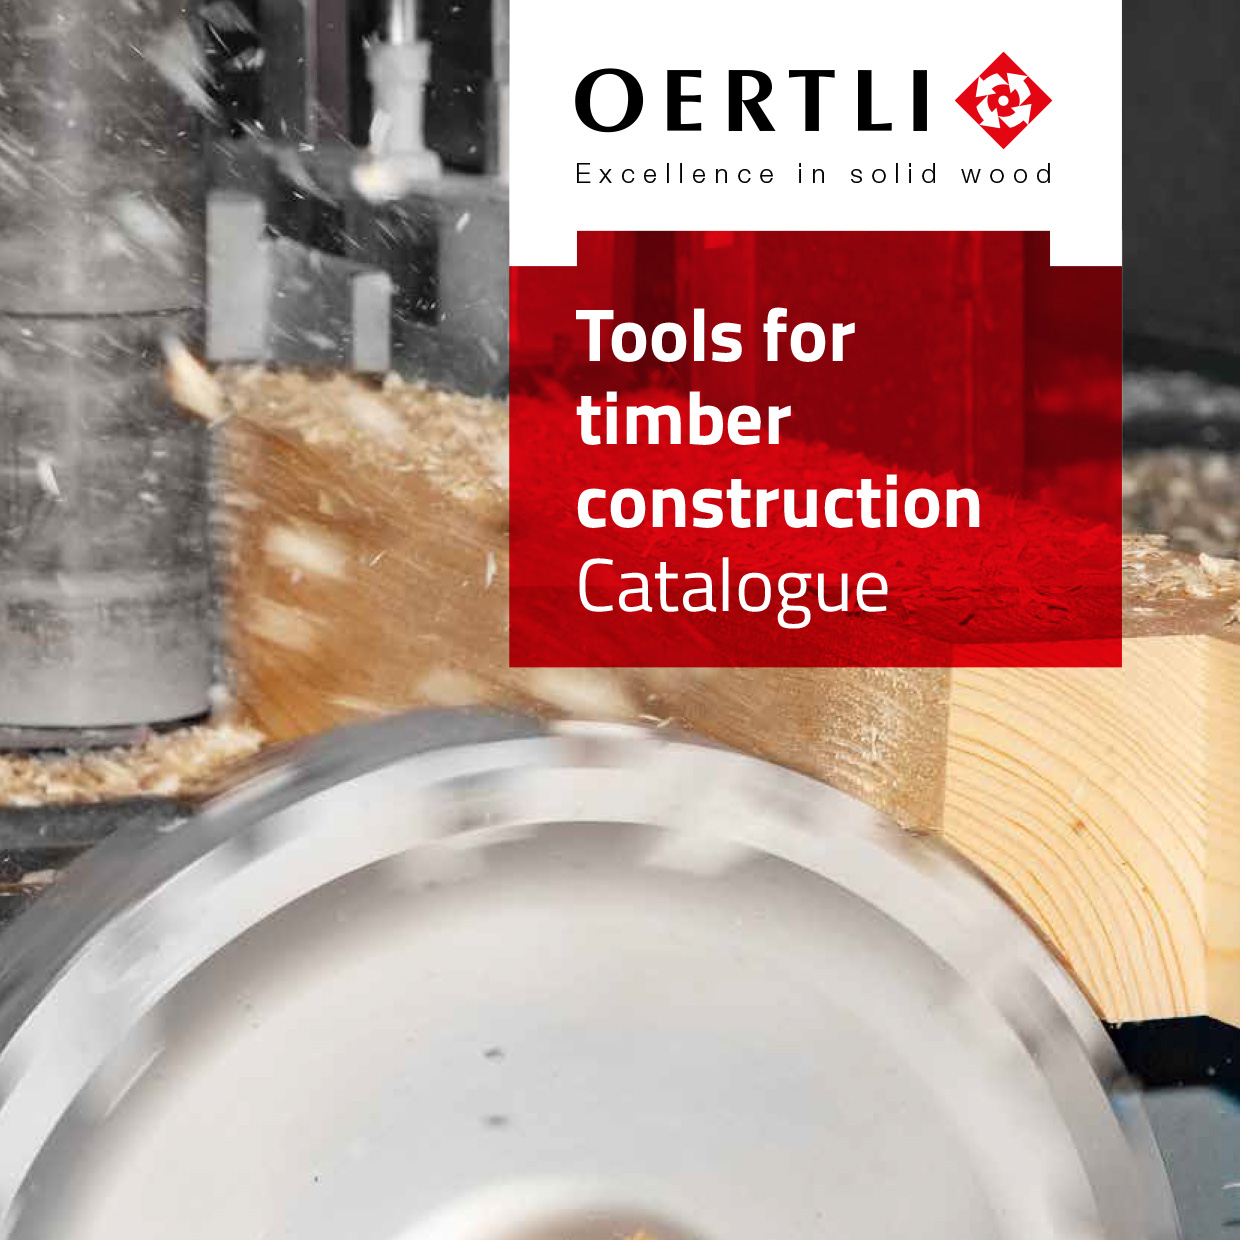 OERTLI tools for professional timber construction